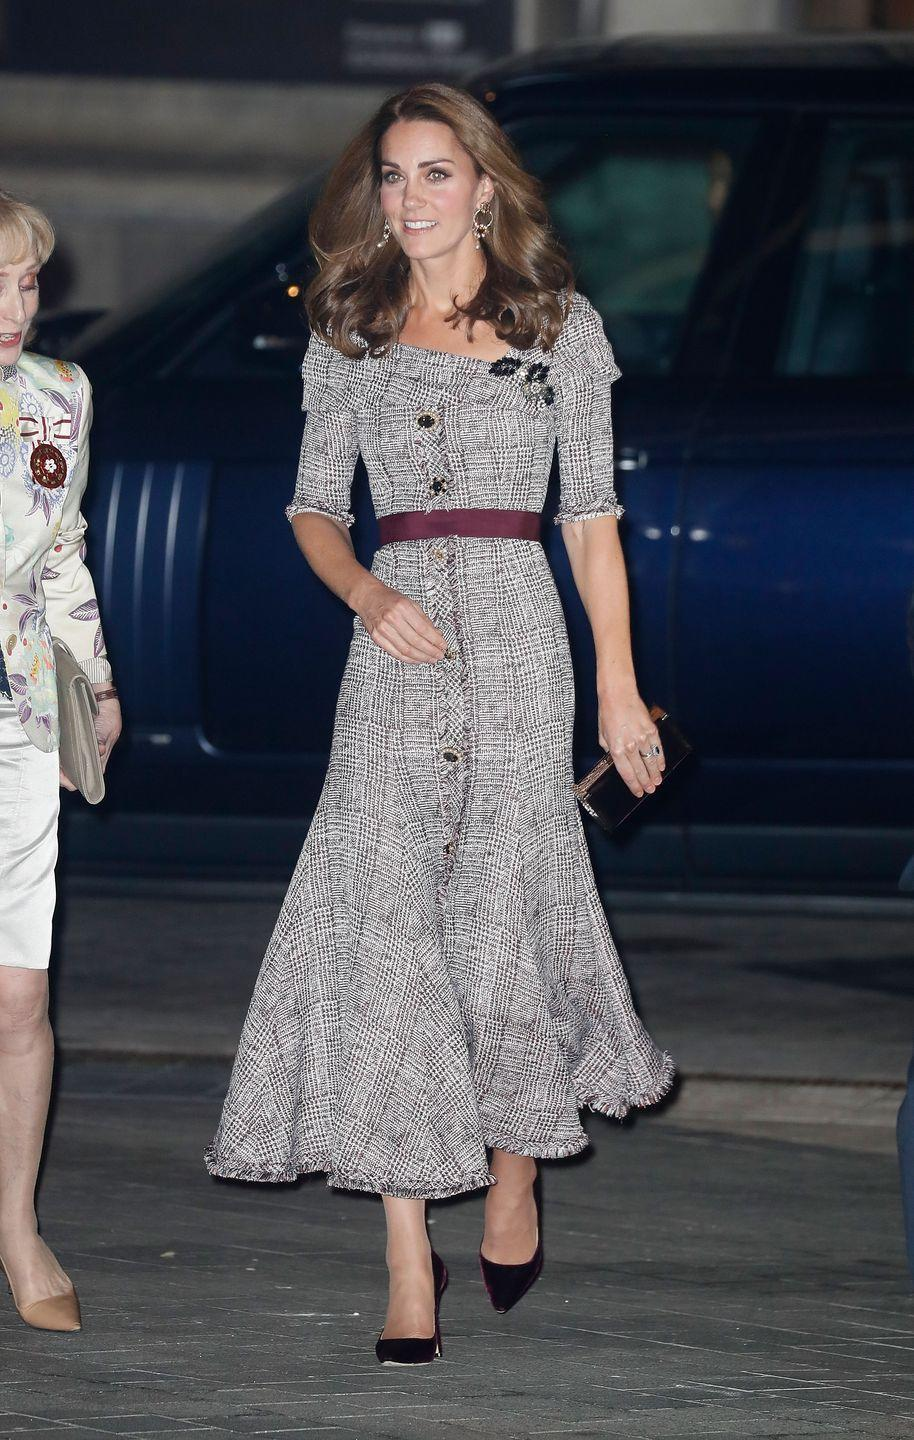 "<p>Kate arrived at the opening of the V&A museum's new photography center wearing a gray plaid dress by Erdem. <a href=""https://www.townandcountrymag.com/society/tradition/a23695614/kate-middleton-victoria-albert-museum-photography-centre-opening/"" rel=""nofollow noopener"" target=""_blank"" data-ylk=""slk:She paired the look with maroon heels and a boxy clutch."" class=""link rapid-noclick-resp"">She paired the look with maroon heels and a boxy clutch.</a></p>"